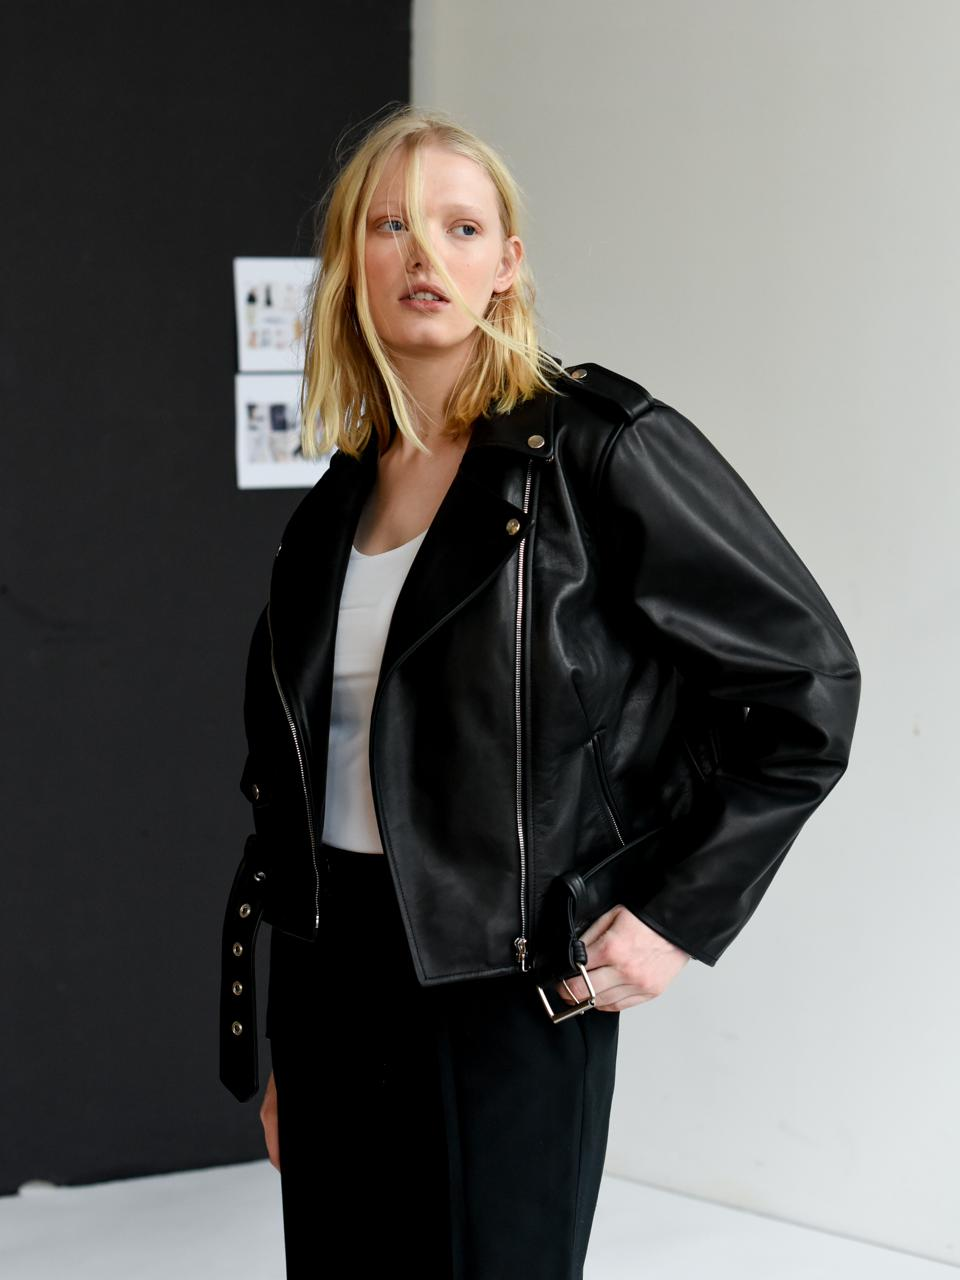 A model wearing a leather coat looking off in the distance